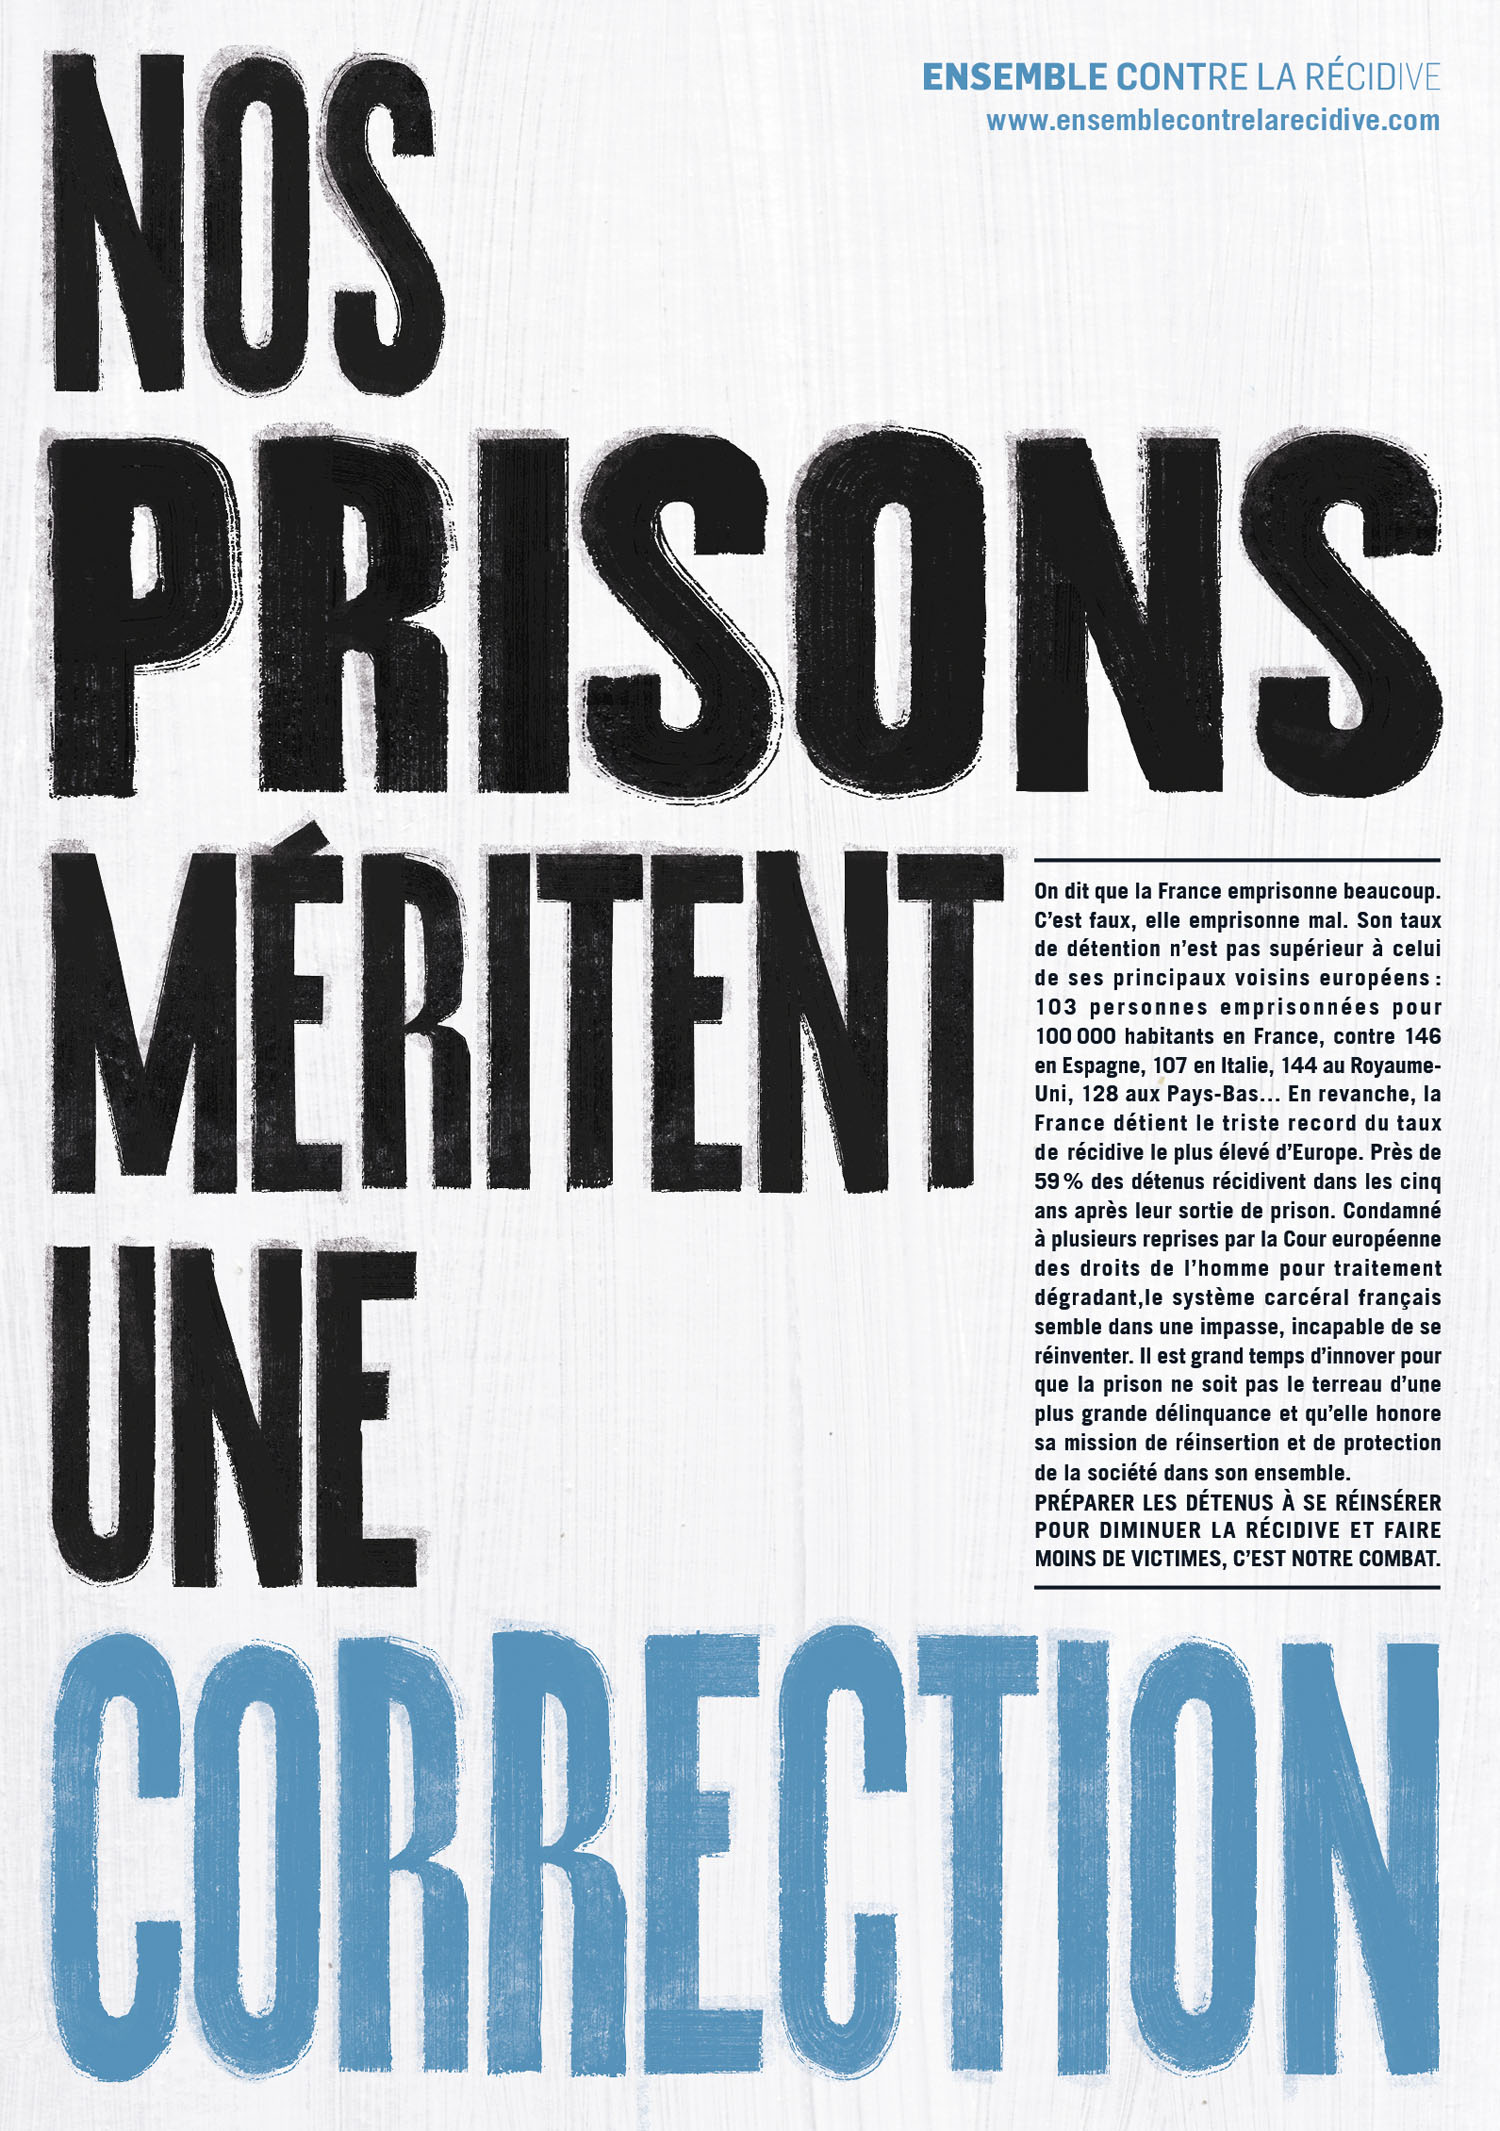 ensemble-contre-la-recidive-pierre-botton-prison-lutte-publicite-marketing-2016-agence-betc-2